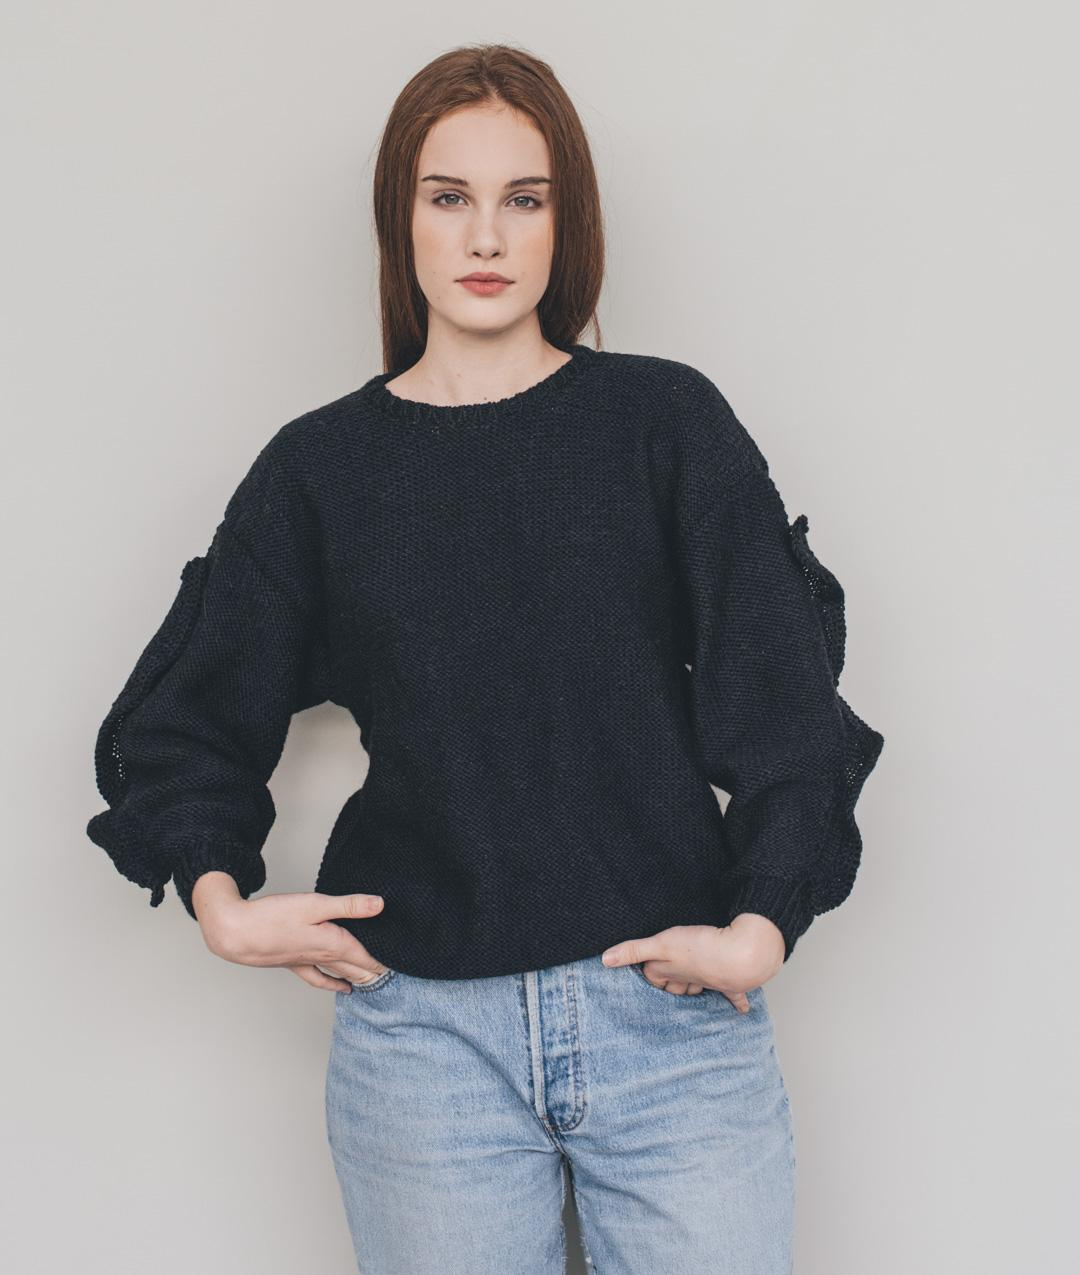 Sweaters and Tops - Wool - NEW CLASSIC JUMPER - 1